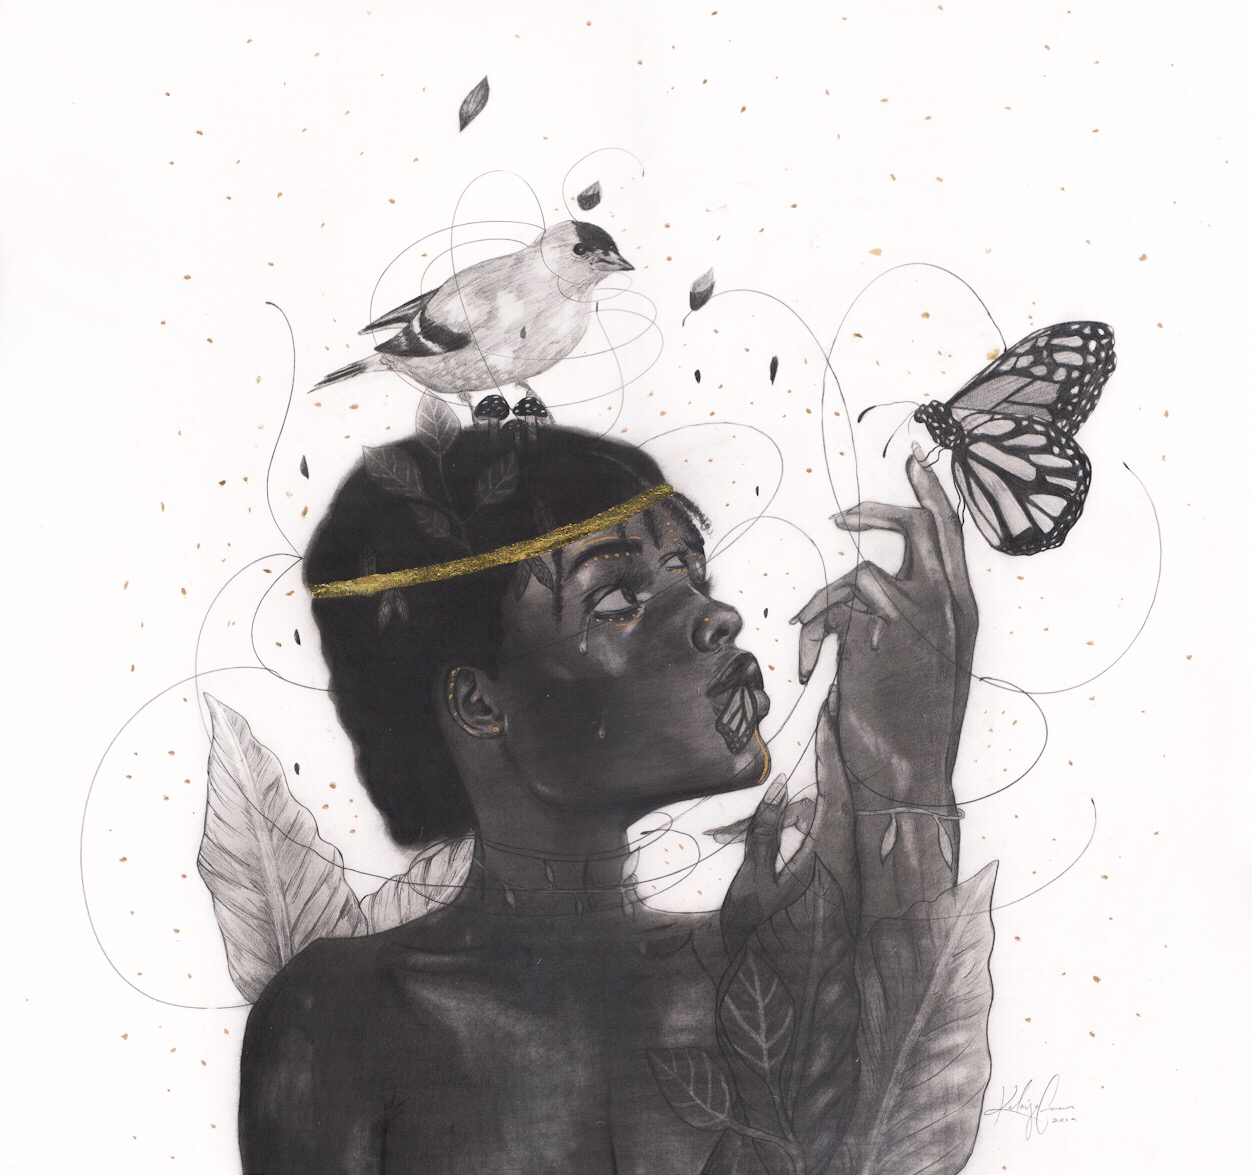 """The Mother's Warriors""  16x16"", graphite and gold leaf on paper  2019  available for purchase - email: hello@theroaringsiren.com for inquiries"